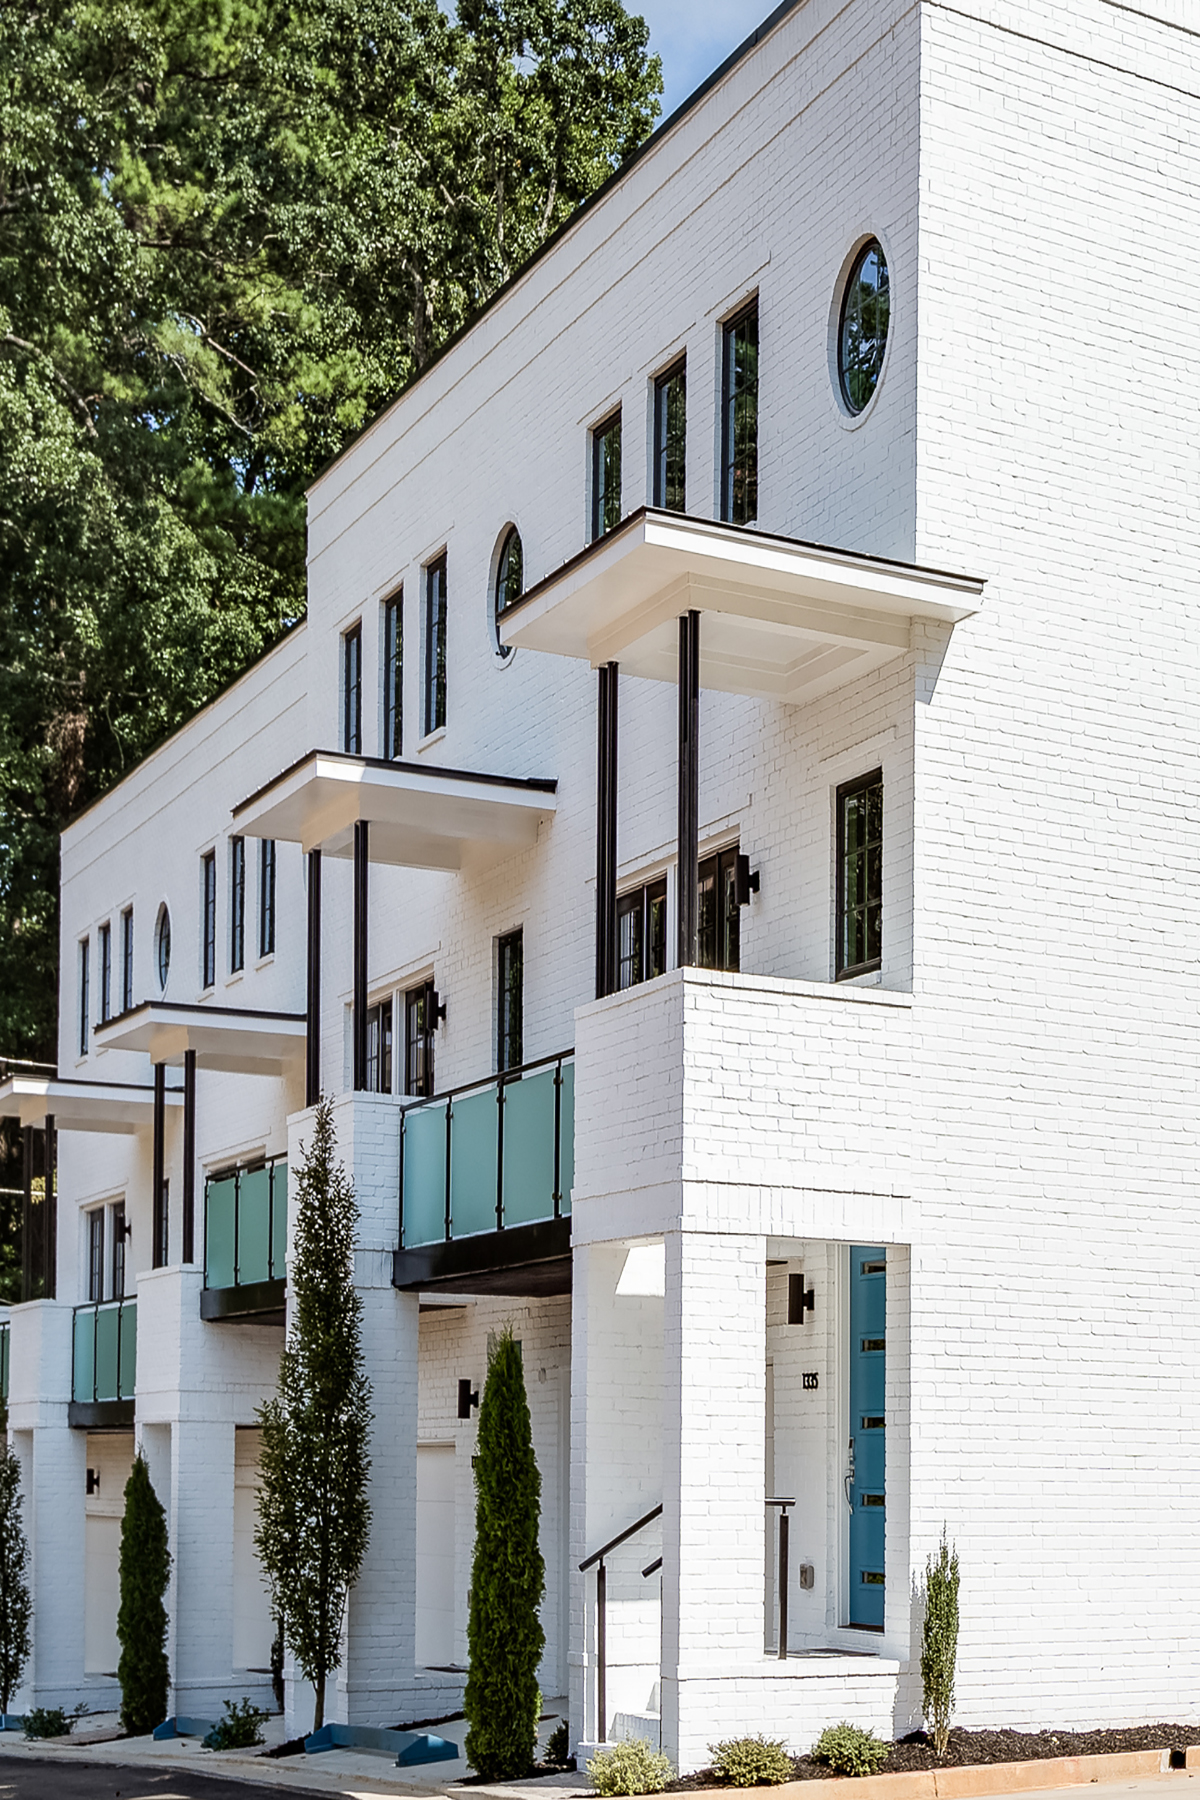 Additional photo for property listing at Stunning Condo Flat in Druid Hills 1494 Red Fox Dr A Atlanta, Georgia 30306 United States